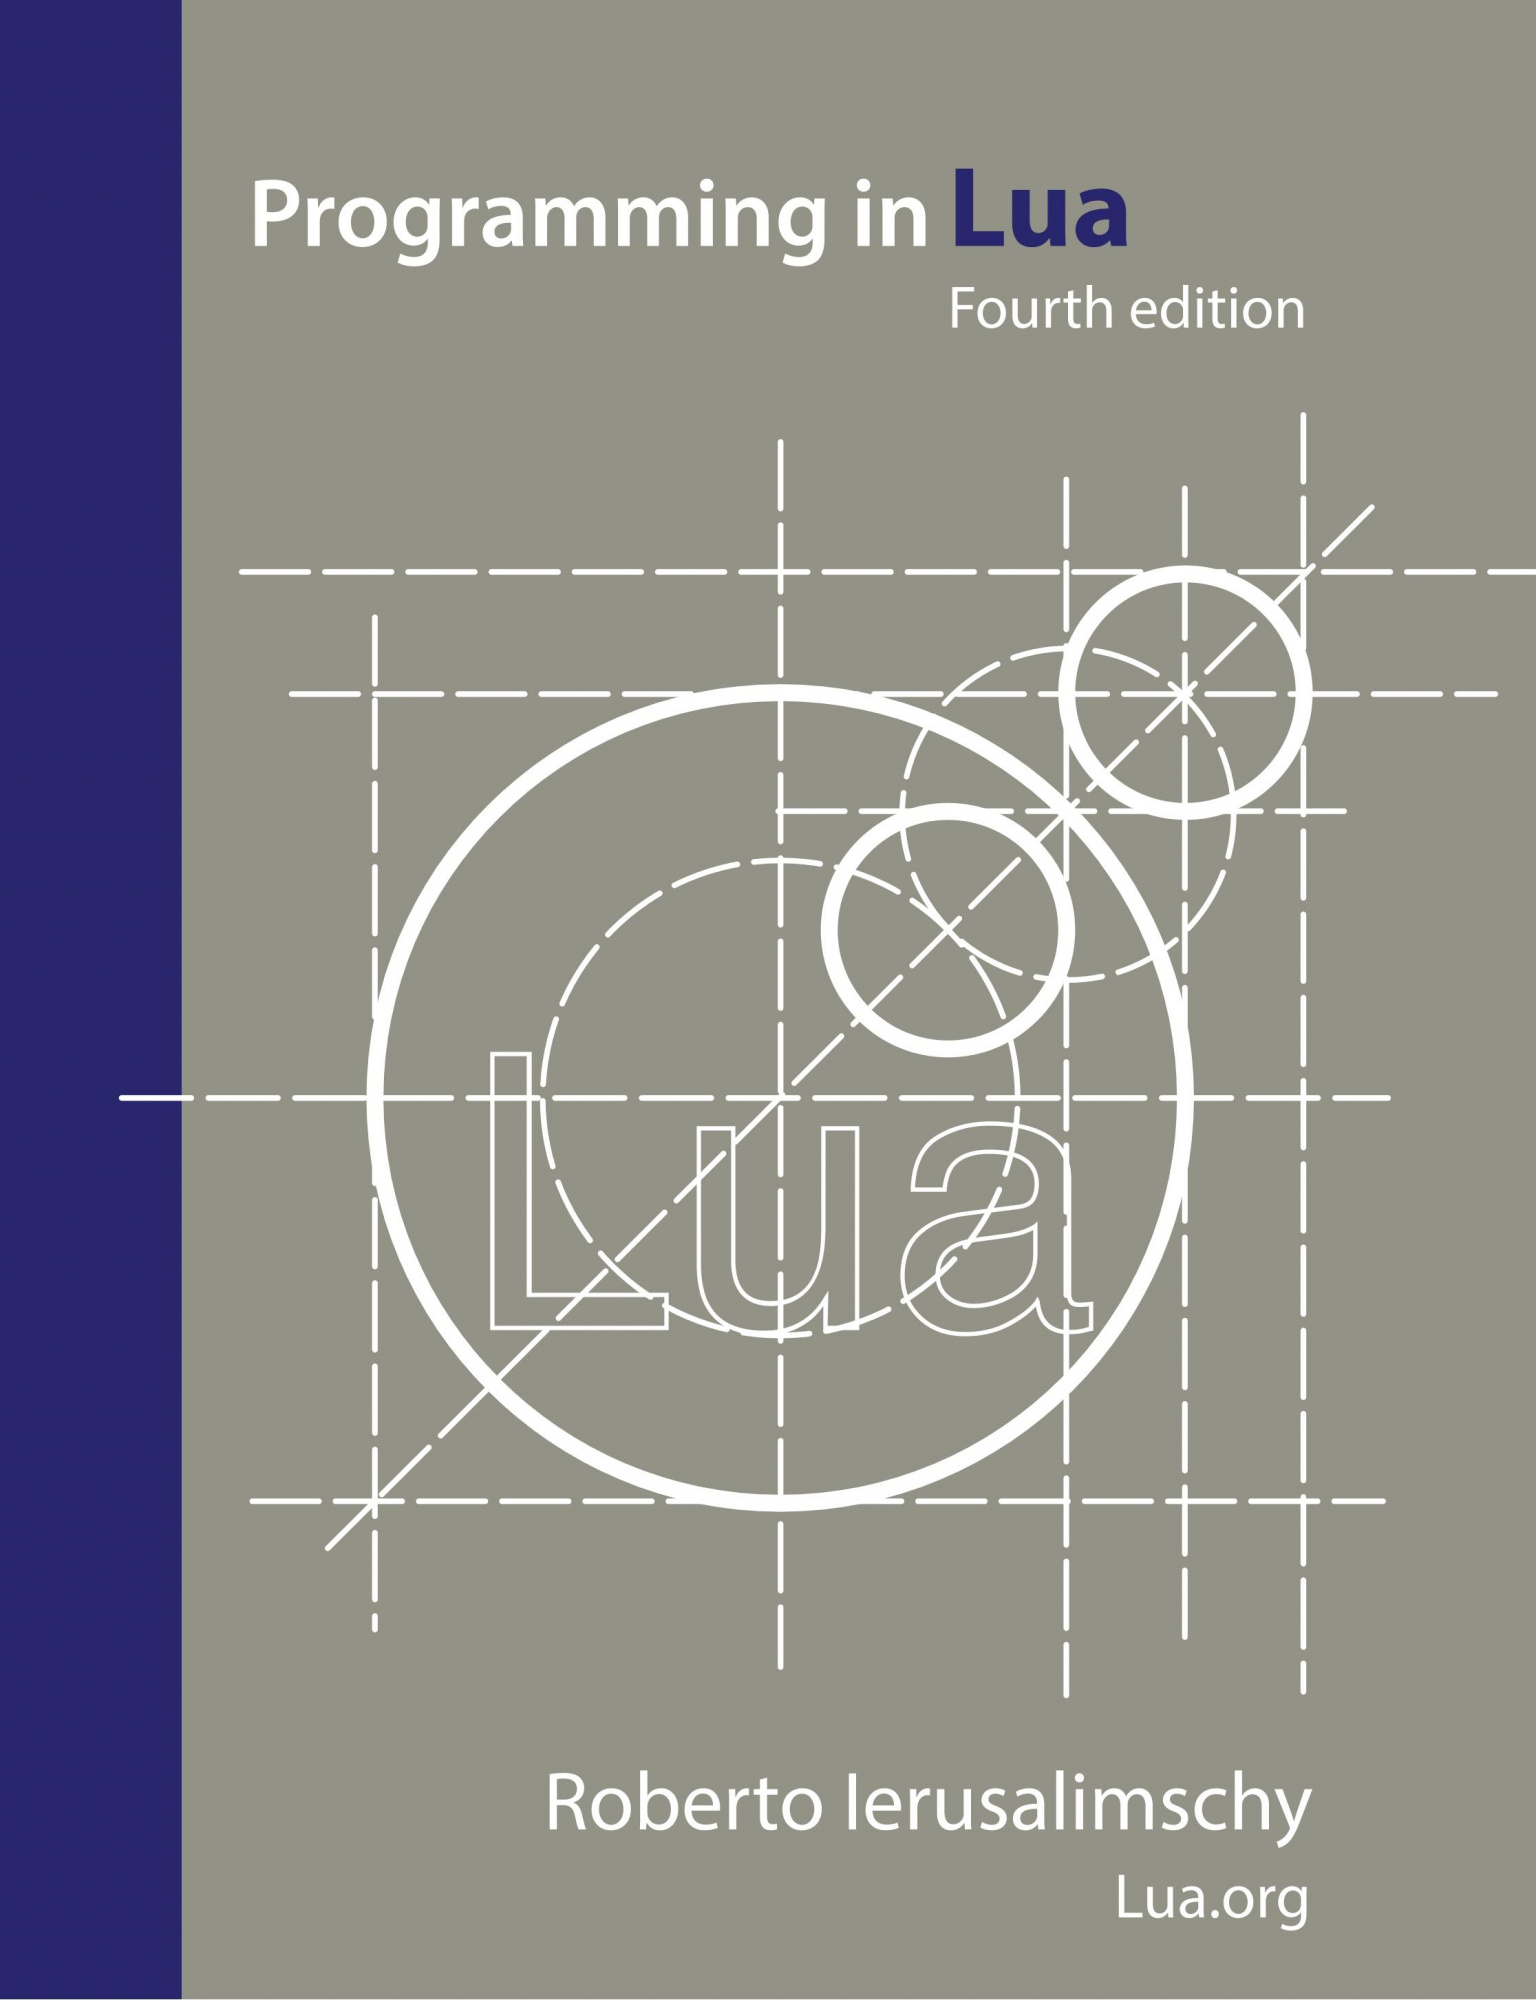 Programming in Lua, fourth edition by Roberto Ierusalimschy, ISBN: 9788590379867